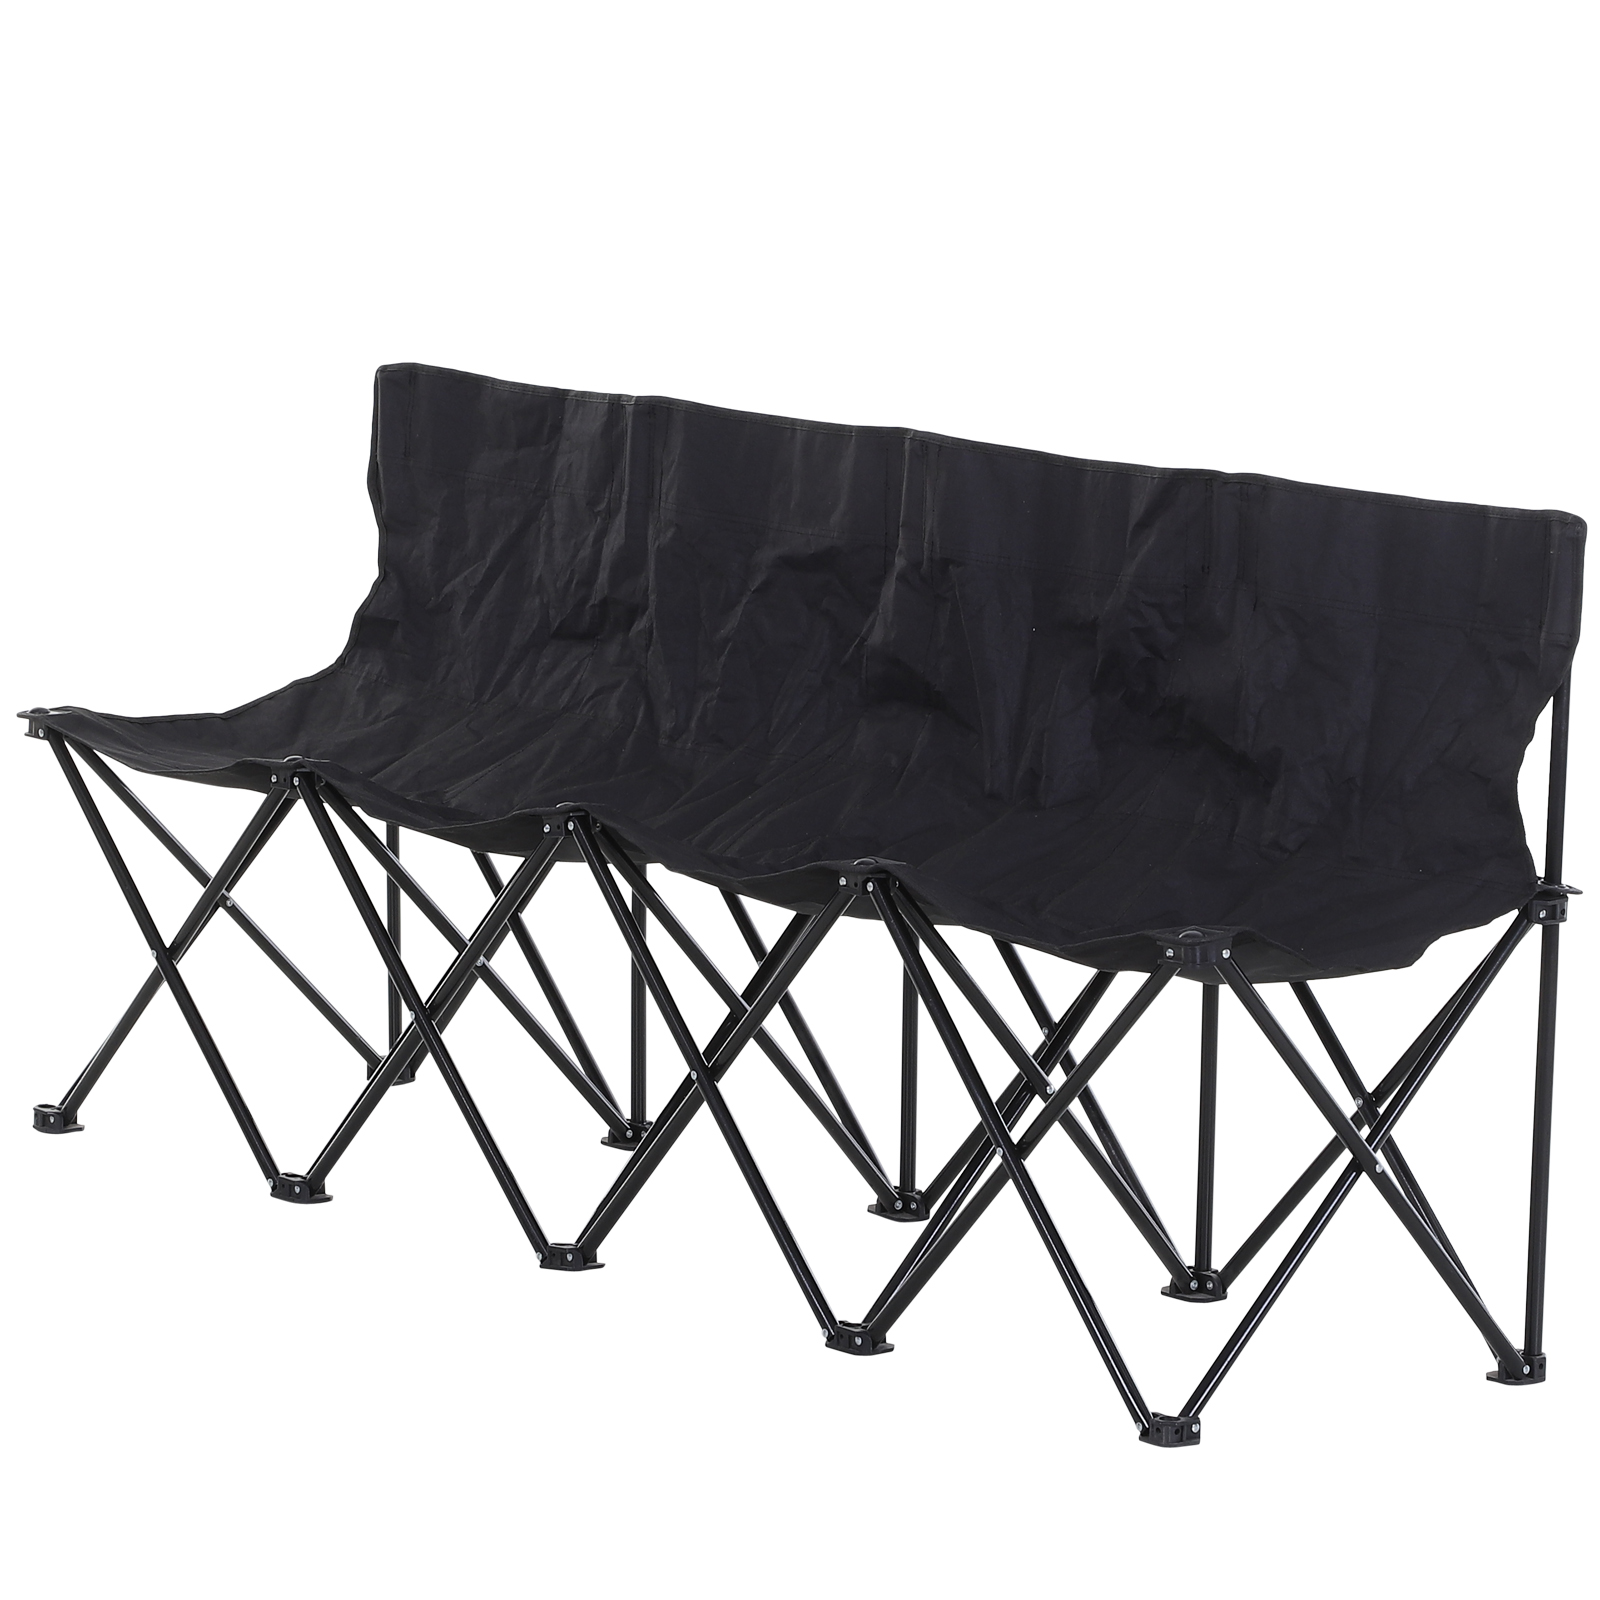 Outsunny 4-Seater Folding Steel Camping Bench w/ Cooler Bag Black